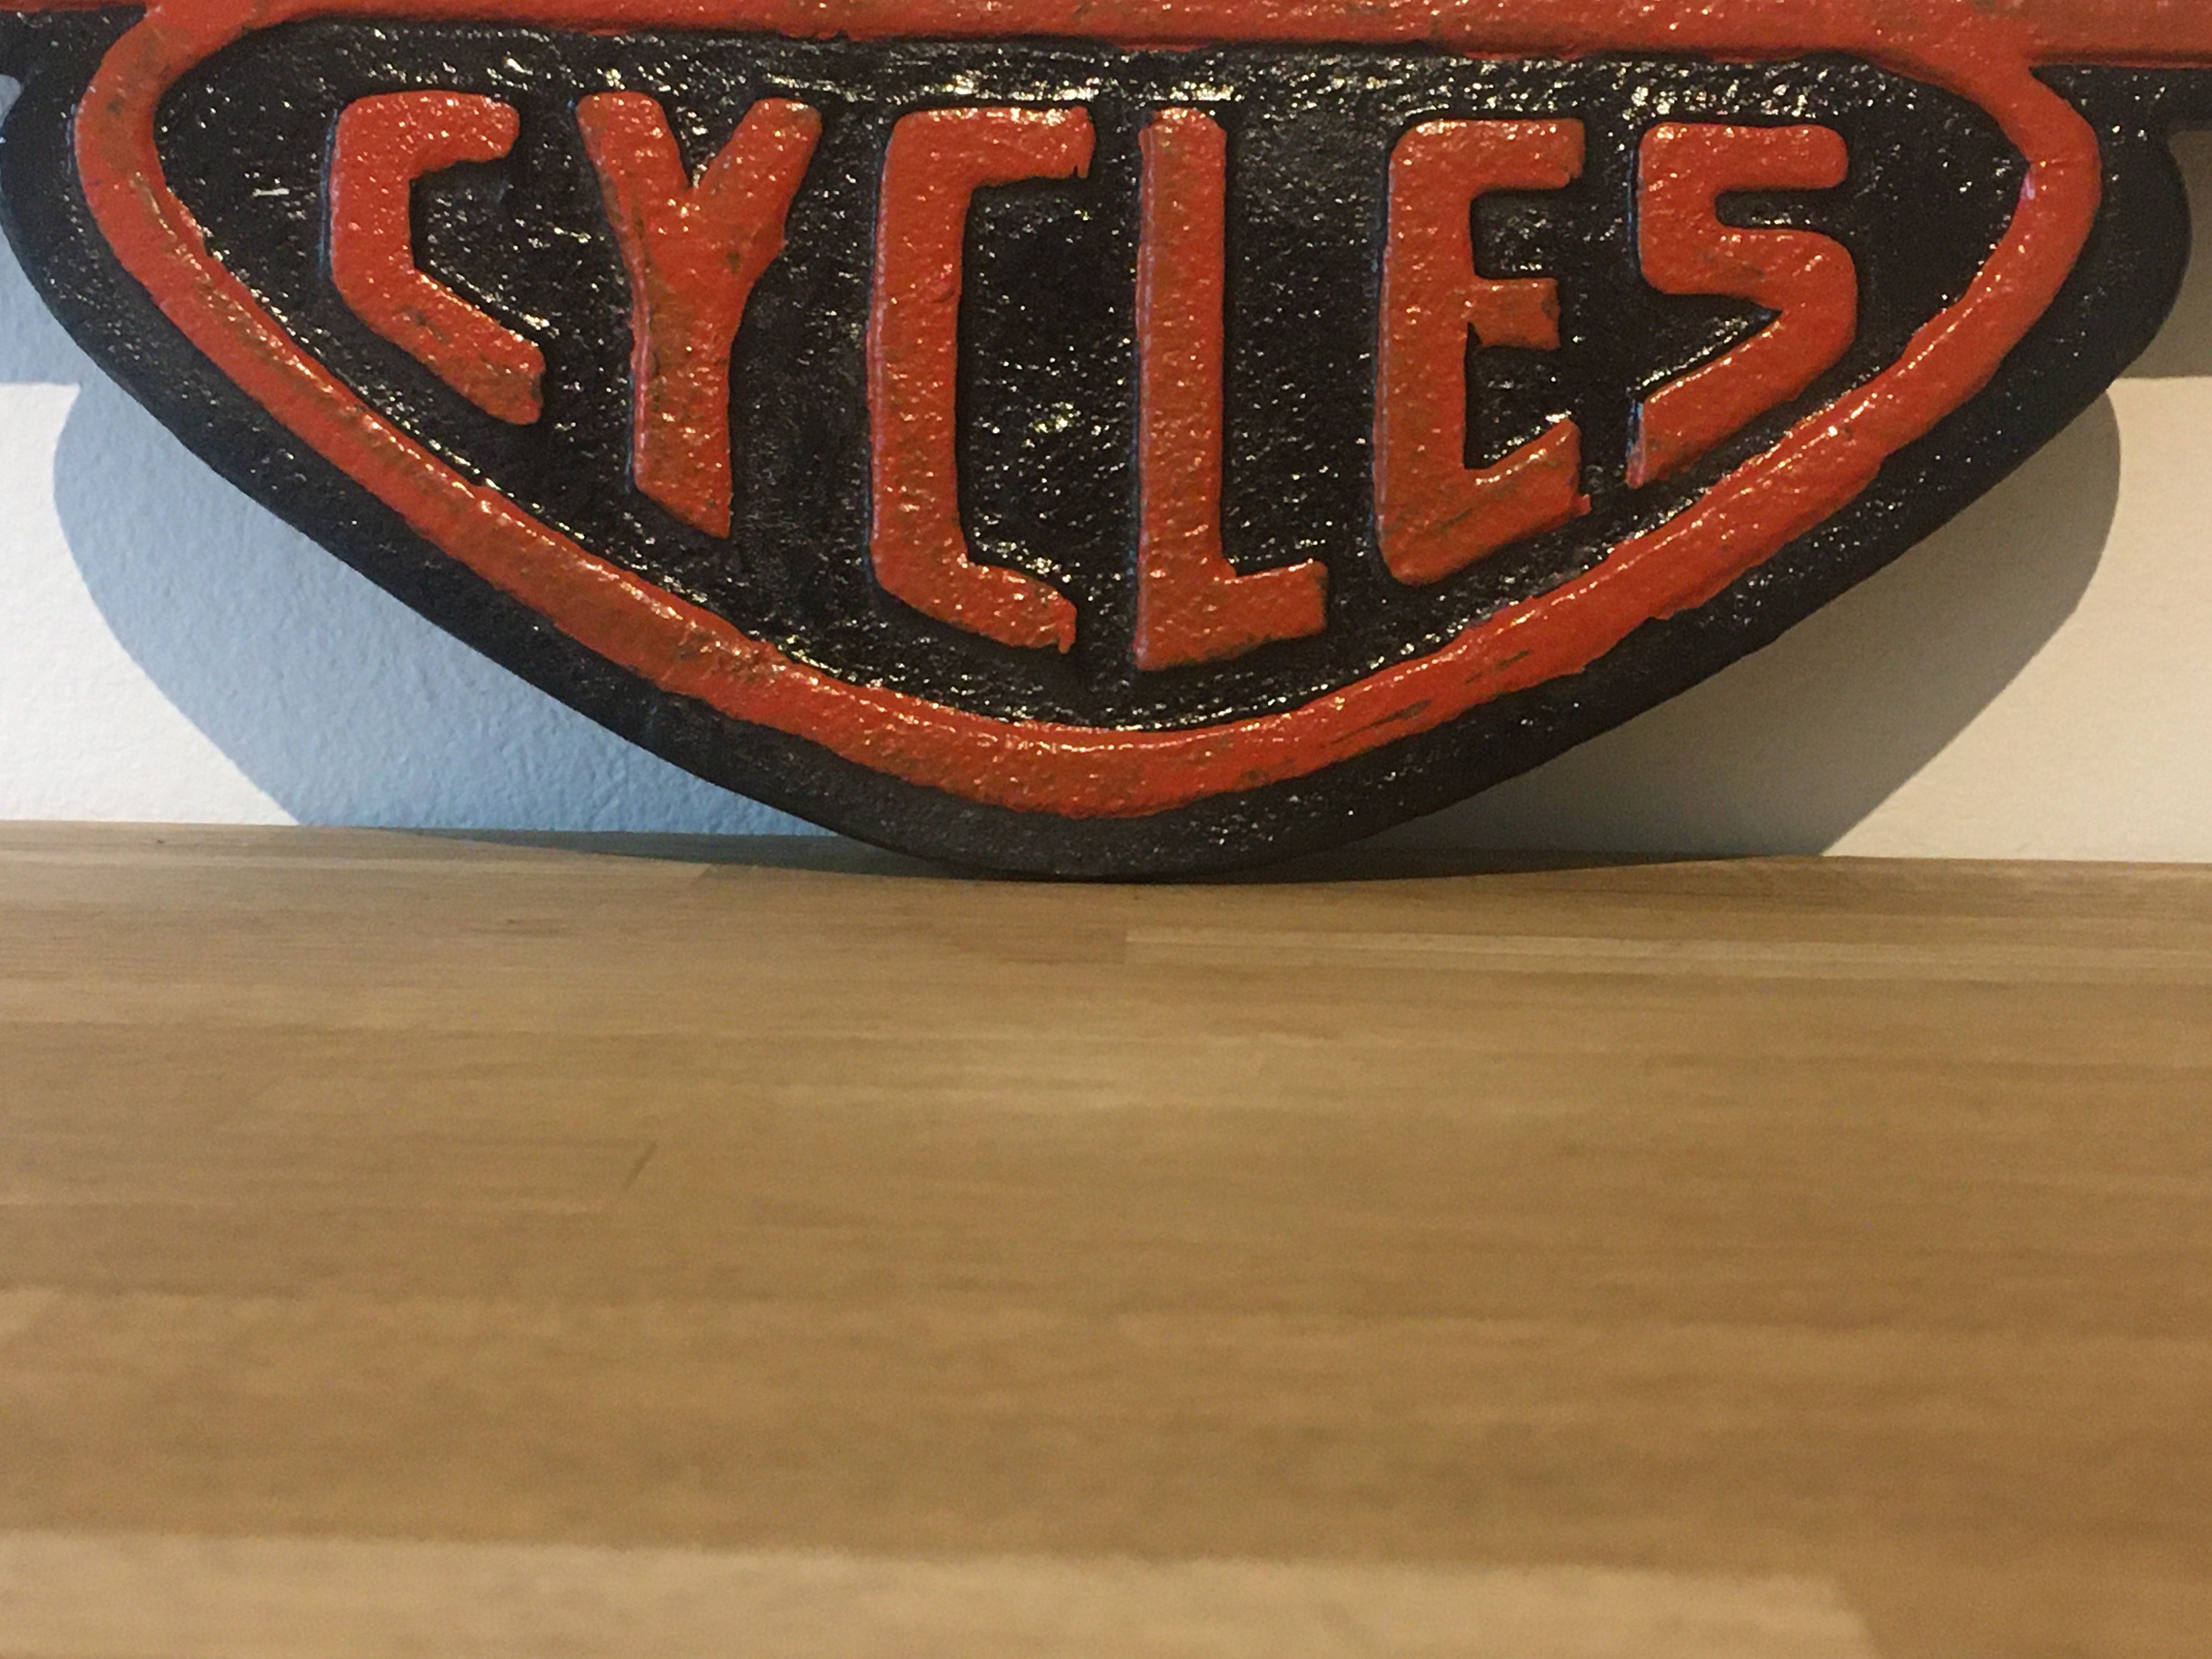 Harley Davidson Motorcycles Cast Iron Sign - Image 3 of 3